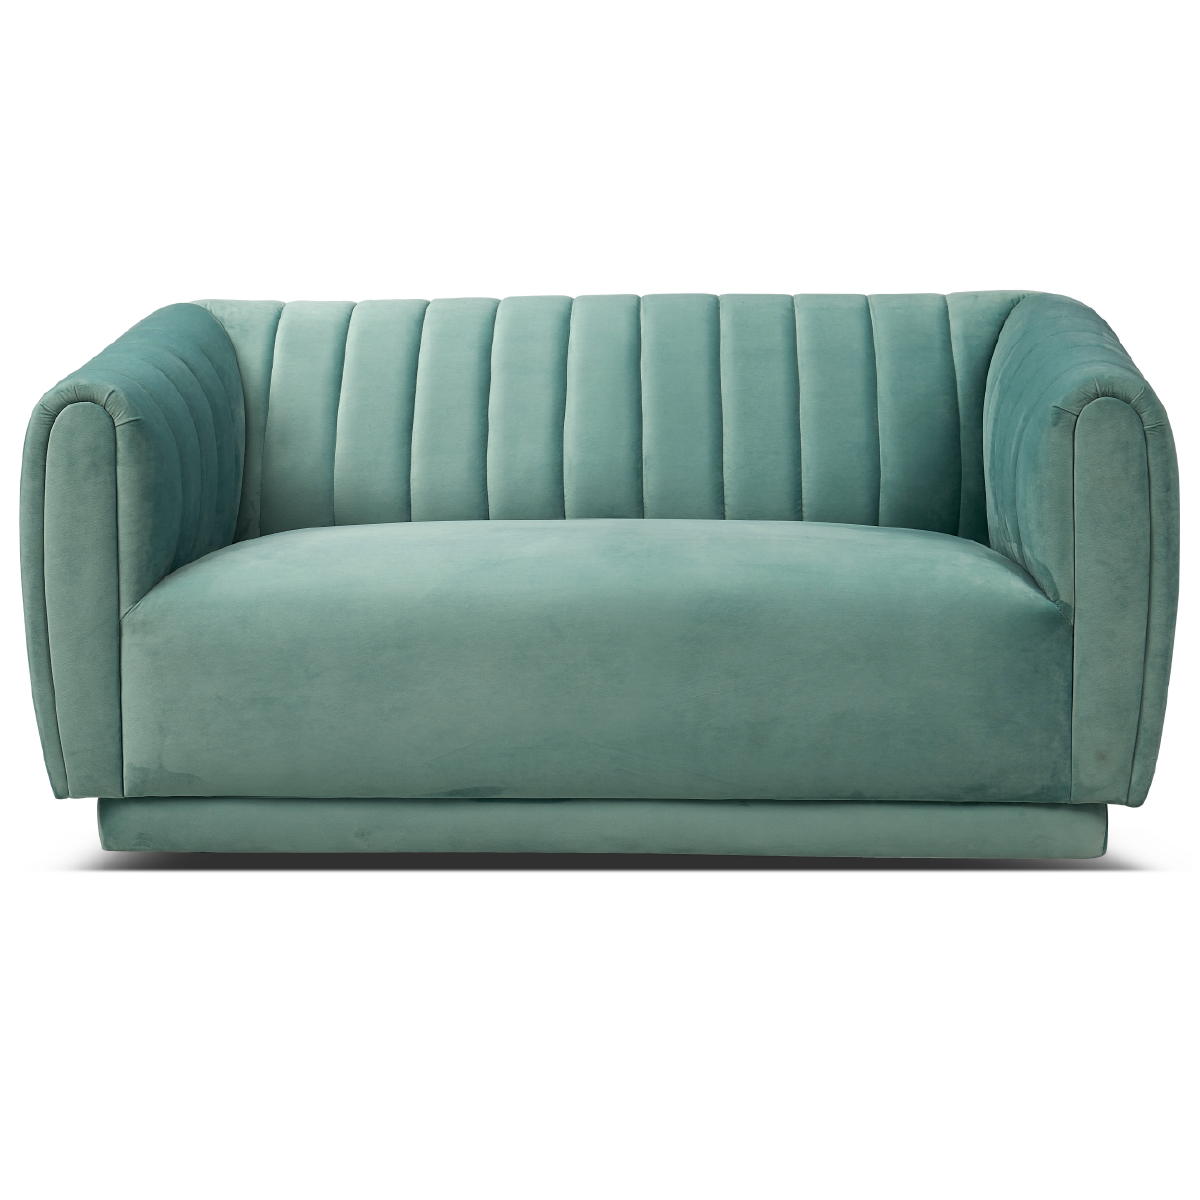 Peridot 2 Seater Sofa - mhomefurniture